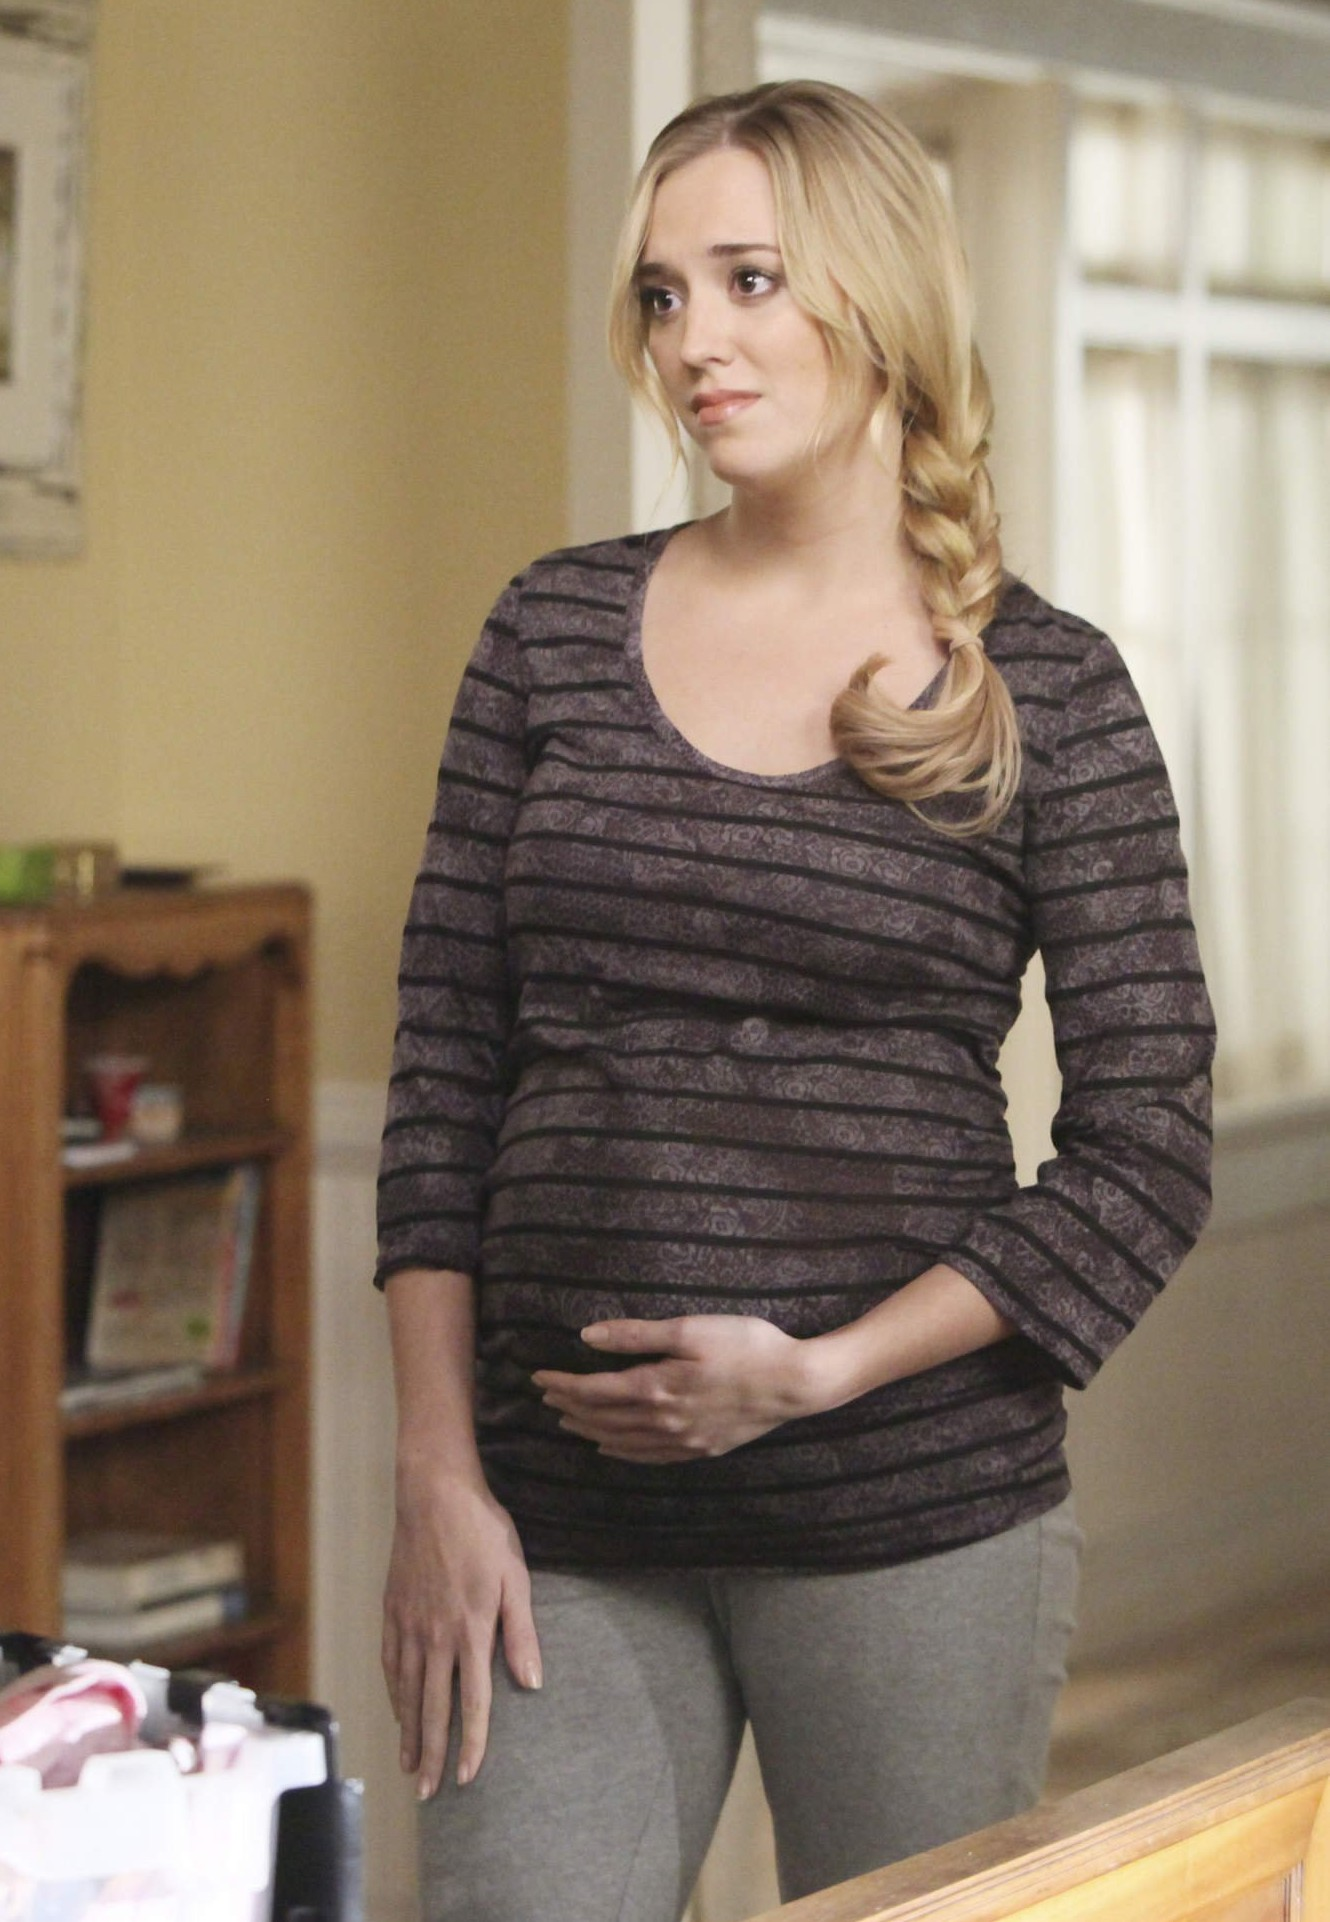 Image - Julie 8x13.jpg - Desperate Housewives Wiki